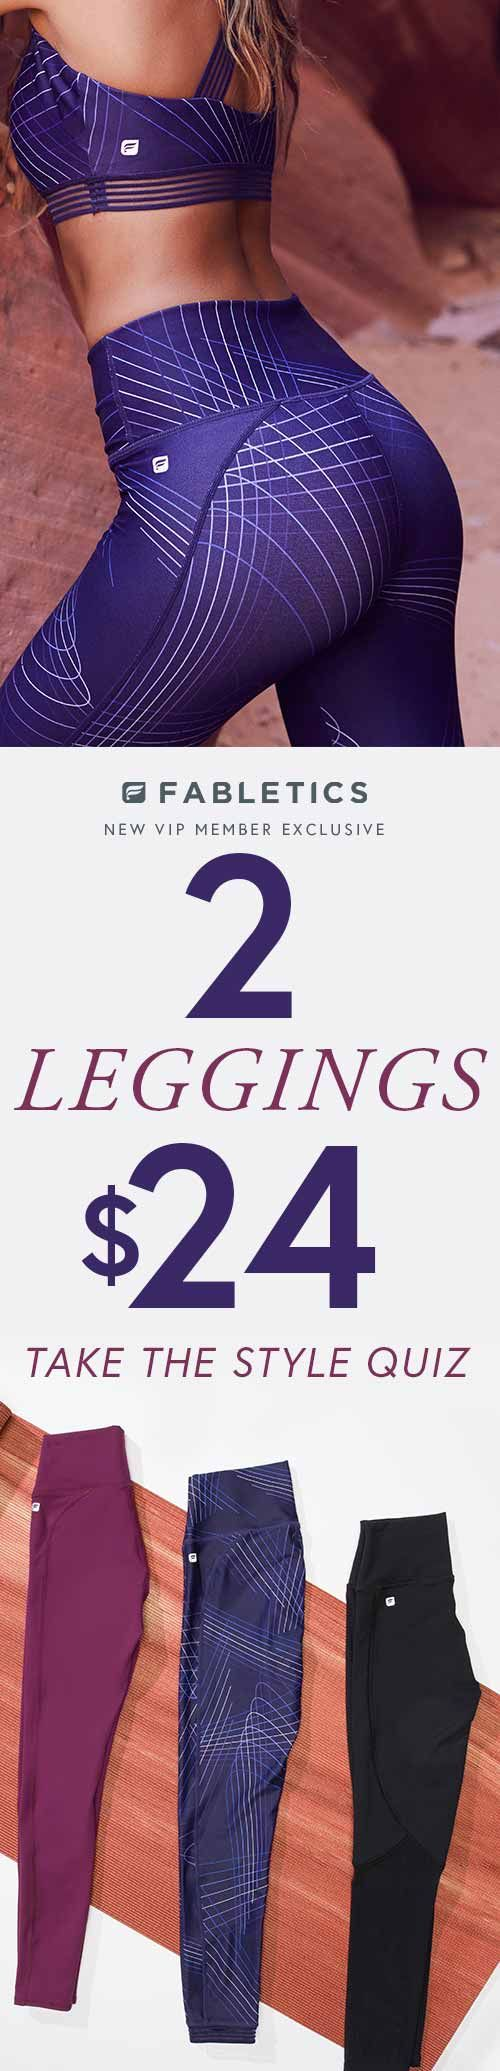 Stylish, Technically Efficient Activewear Designed for All Shapes and Sizes. Take Our Quick 60 Second Style Quiz to Get Your First 2 Styles for $24!